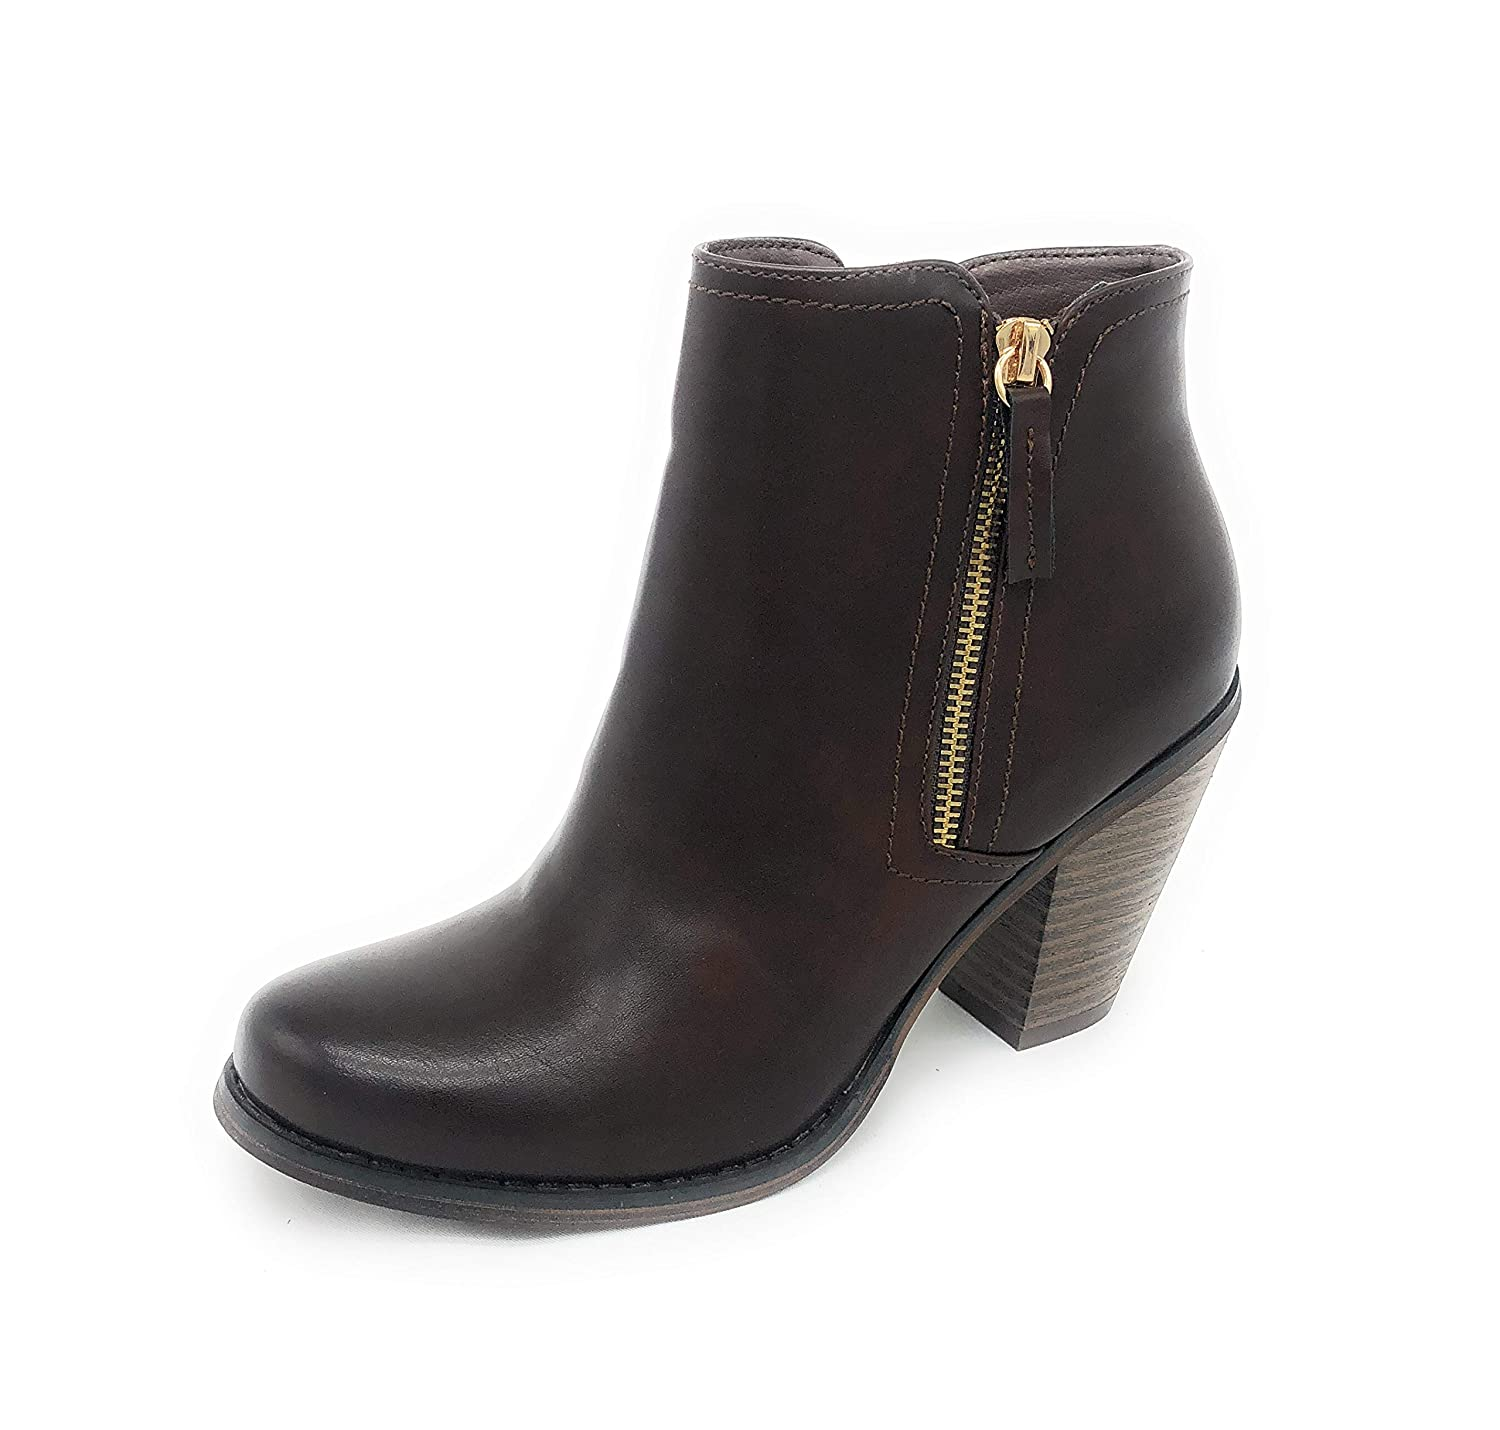 Brown-irene-07 SOLE COLLECTION Faux Leather Suede Strap Side Zipper Chunky Block Heels Dress Ankle Boots